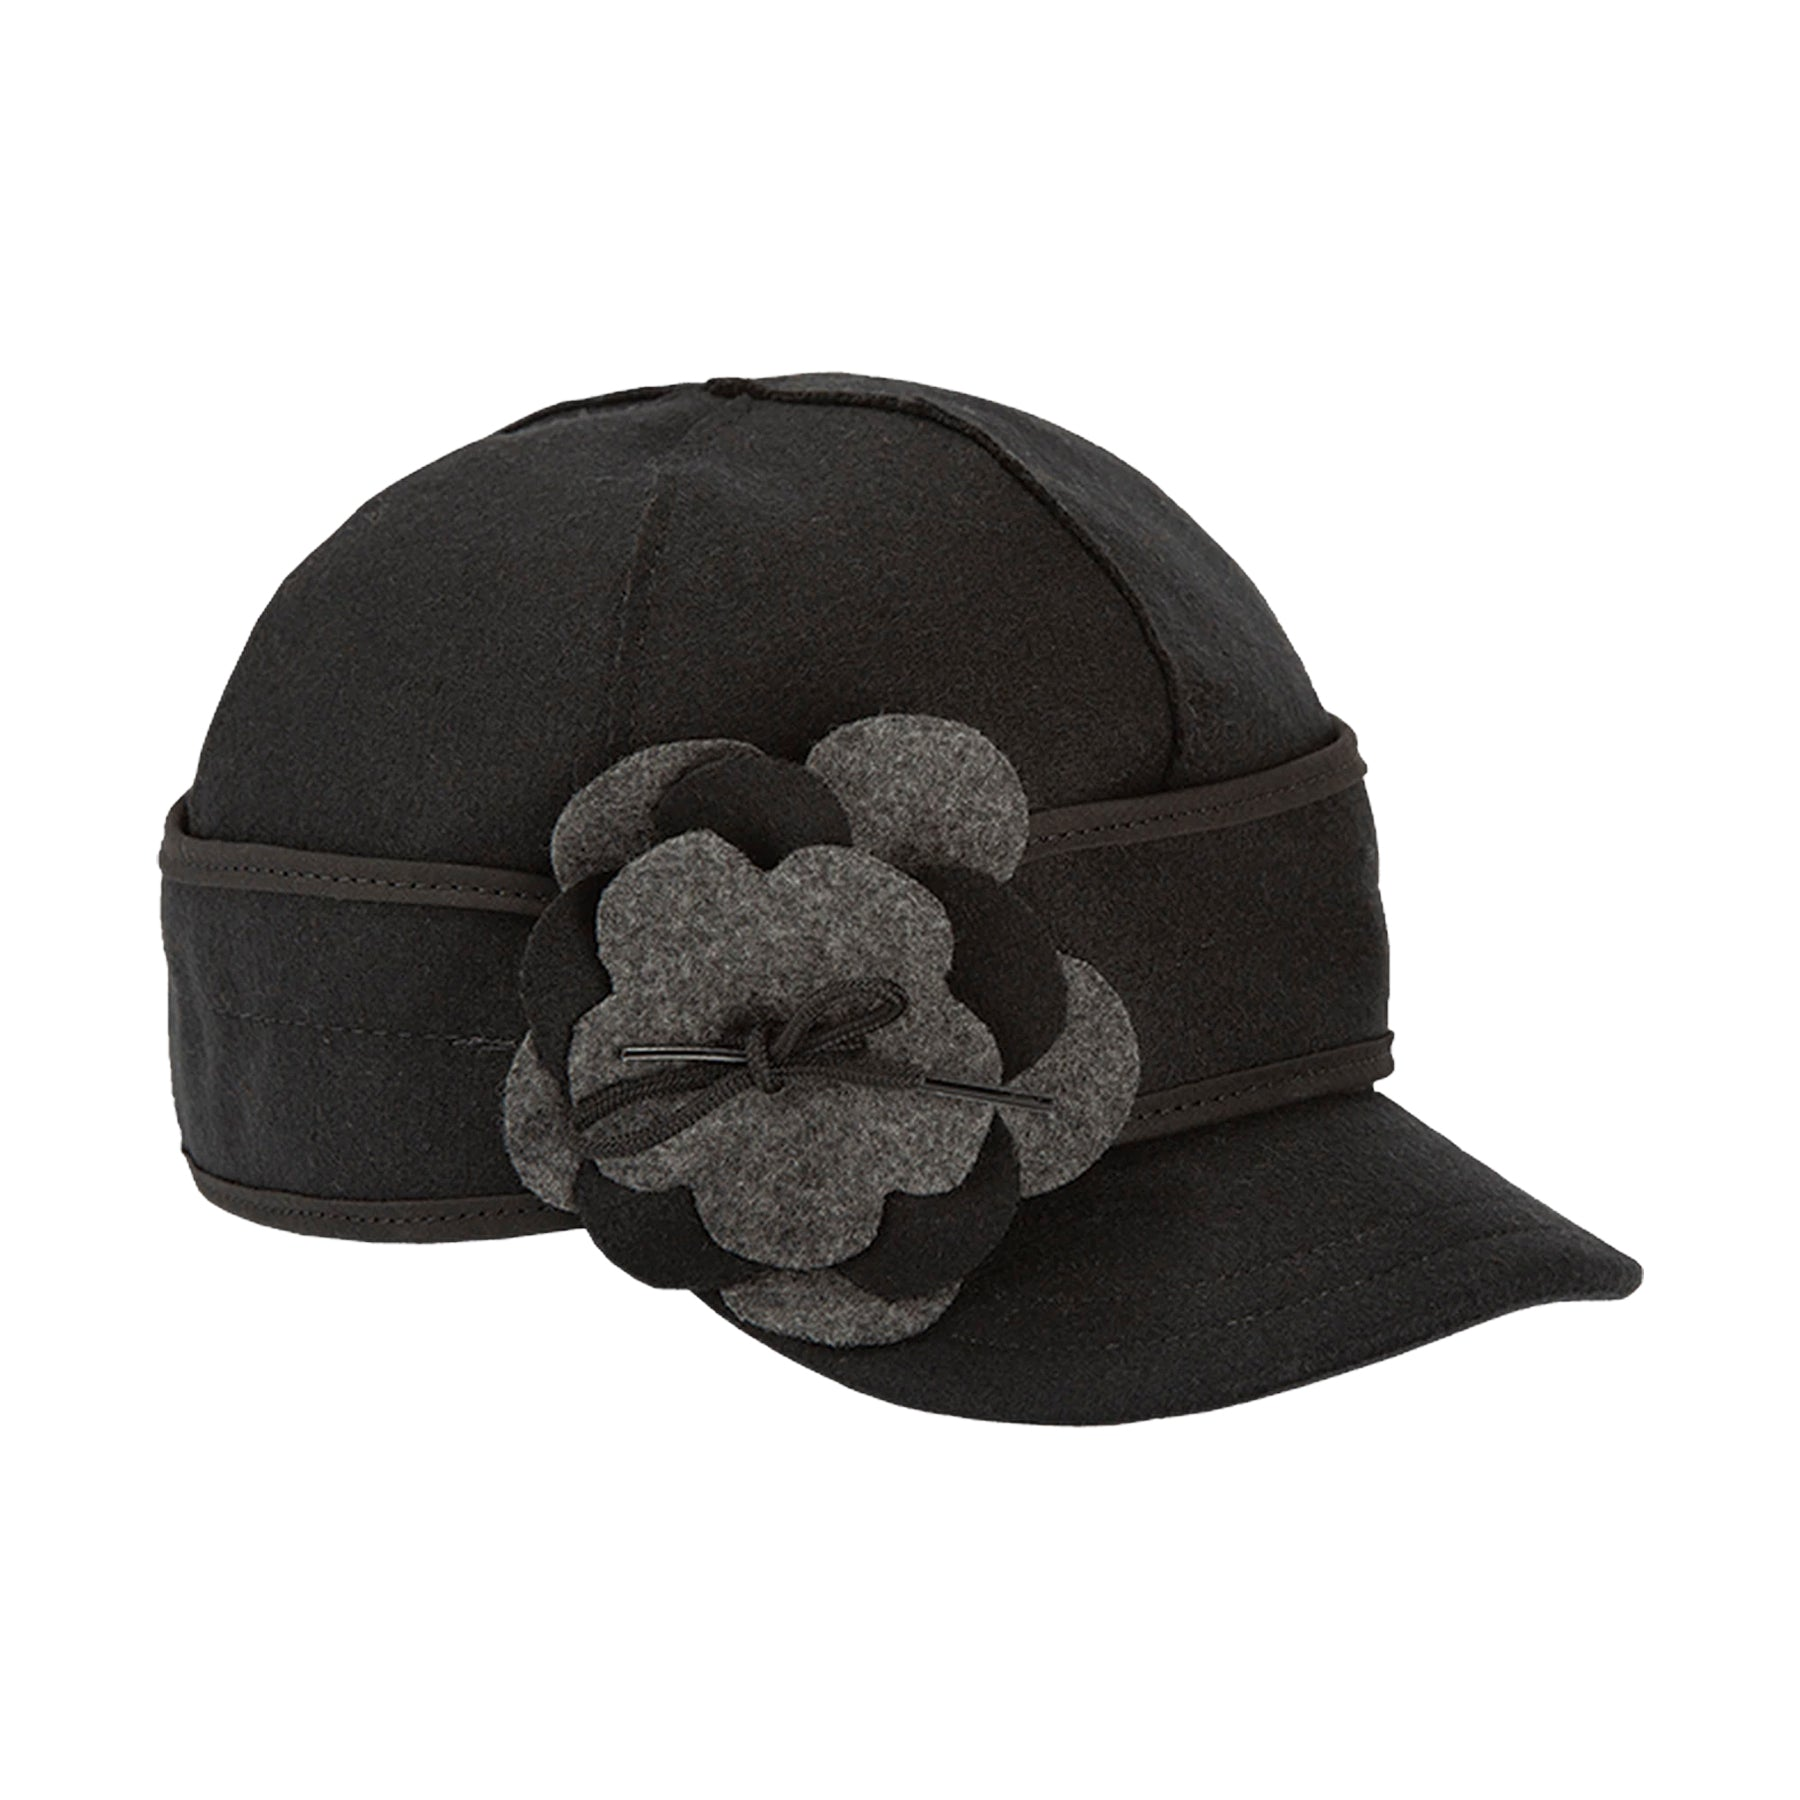 Stormy Kromer Petal Pusher Cap - Black & Charcoal